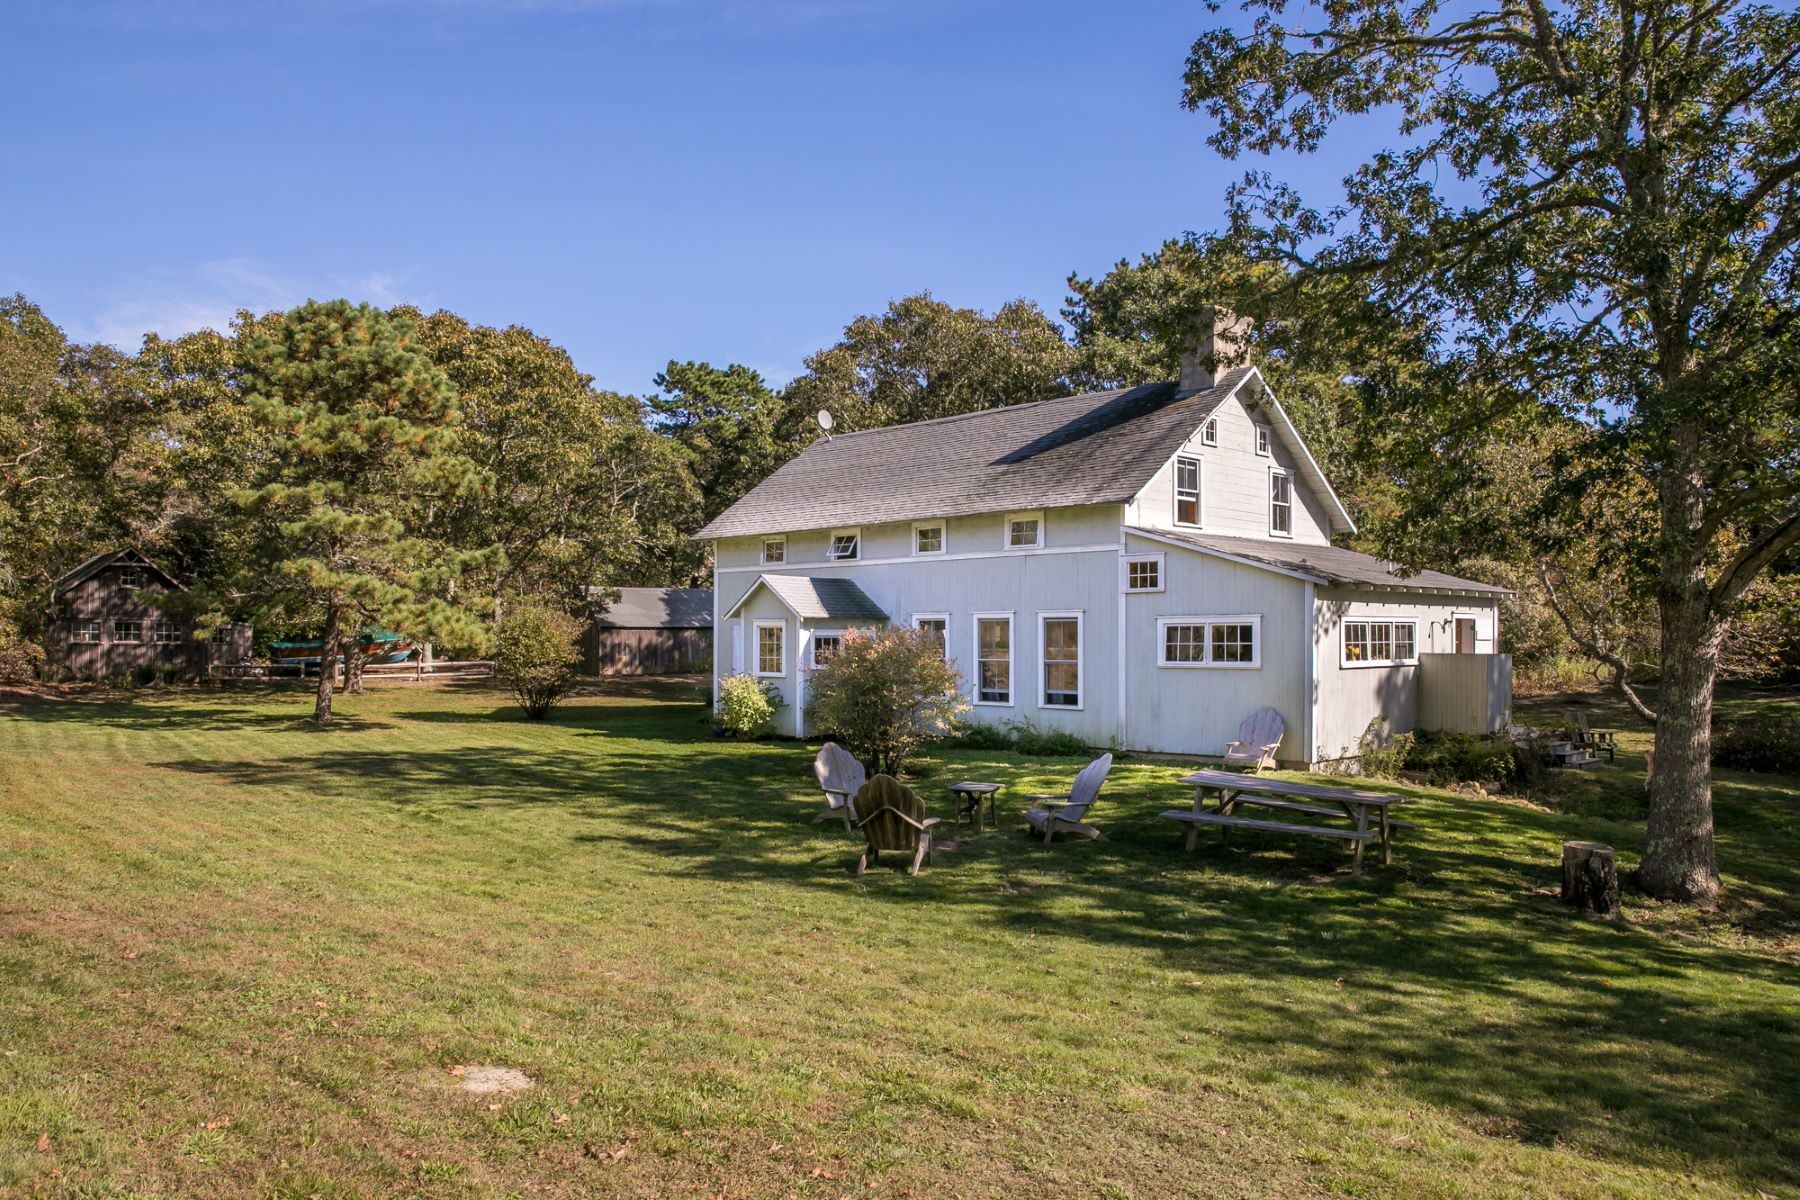 Single Family Home for Sale at Extraordinary cape style home in Chilmark 5 Tree Frog Lane Chilmark, Massachusetts 02535 United States